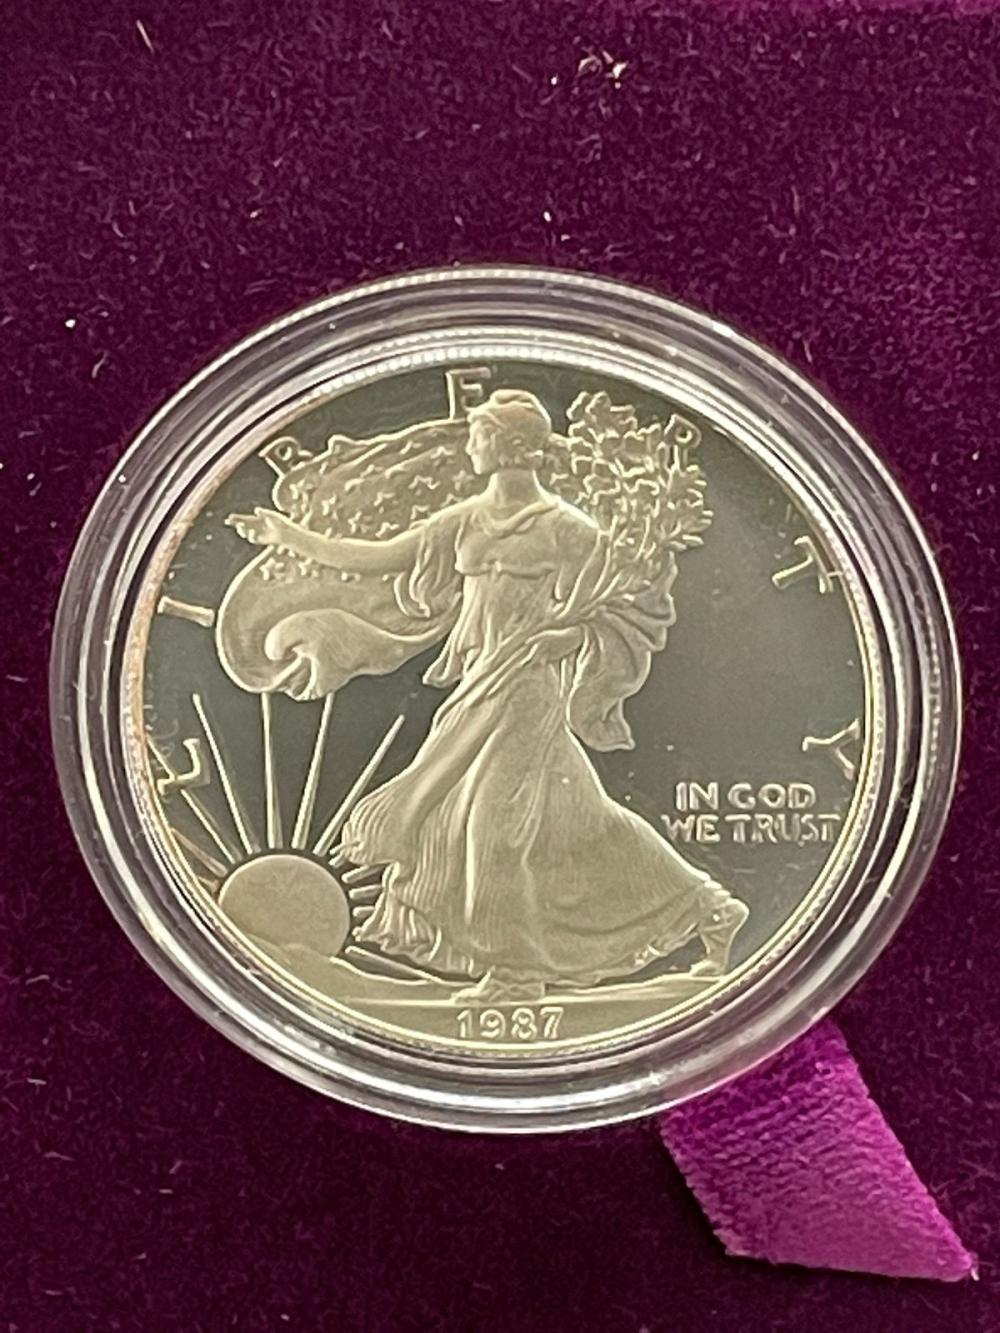 1987-S American Eagle One Ounce Silver Proof Coin In Presentation Box